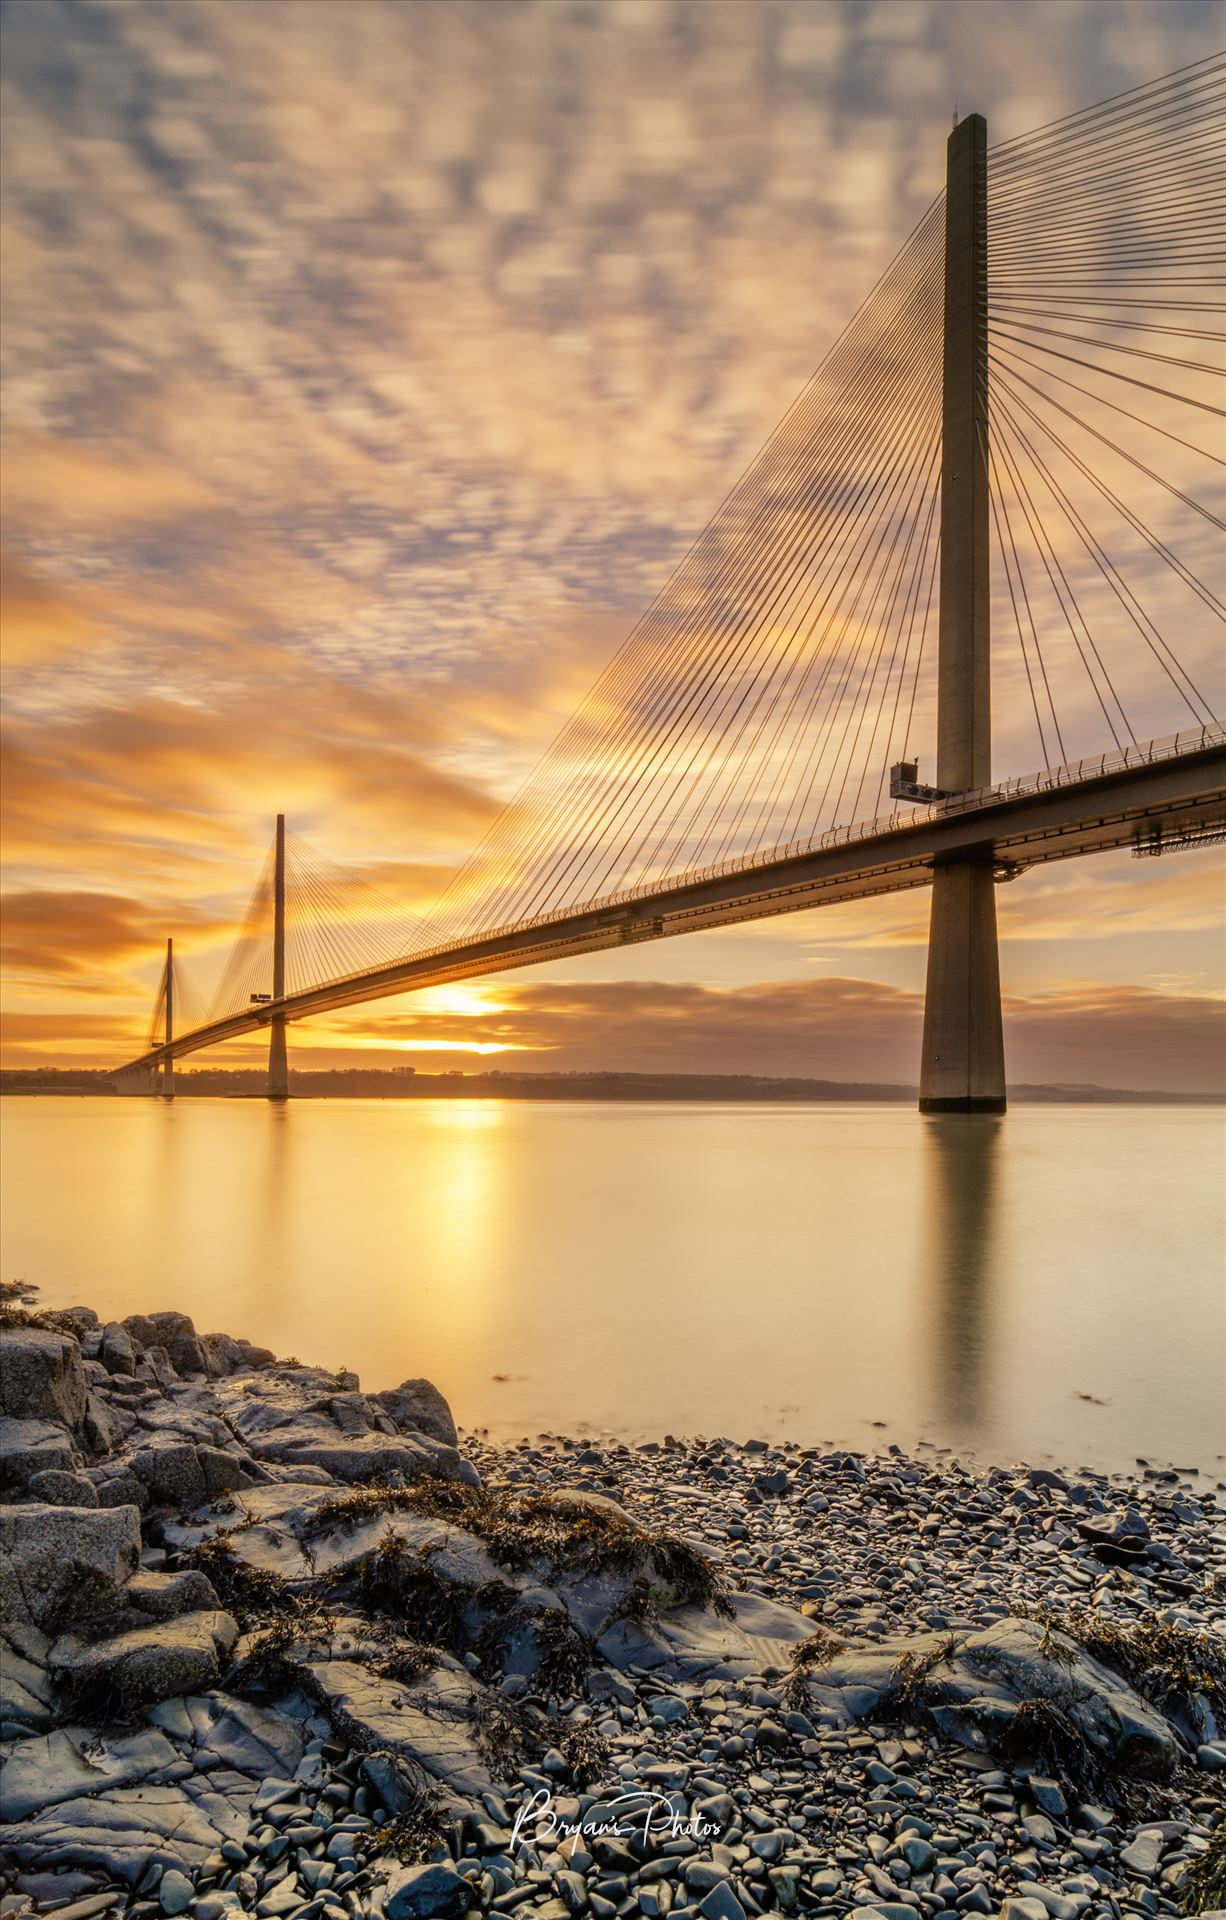 Queensferry Sunset Portrait A portrait photograph of the Queensferry Crossing taken at sunset from North Queensferry on the Fife coast. by Bryans Photos